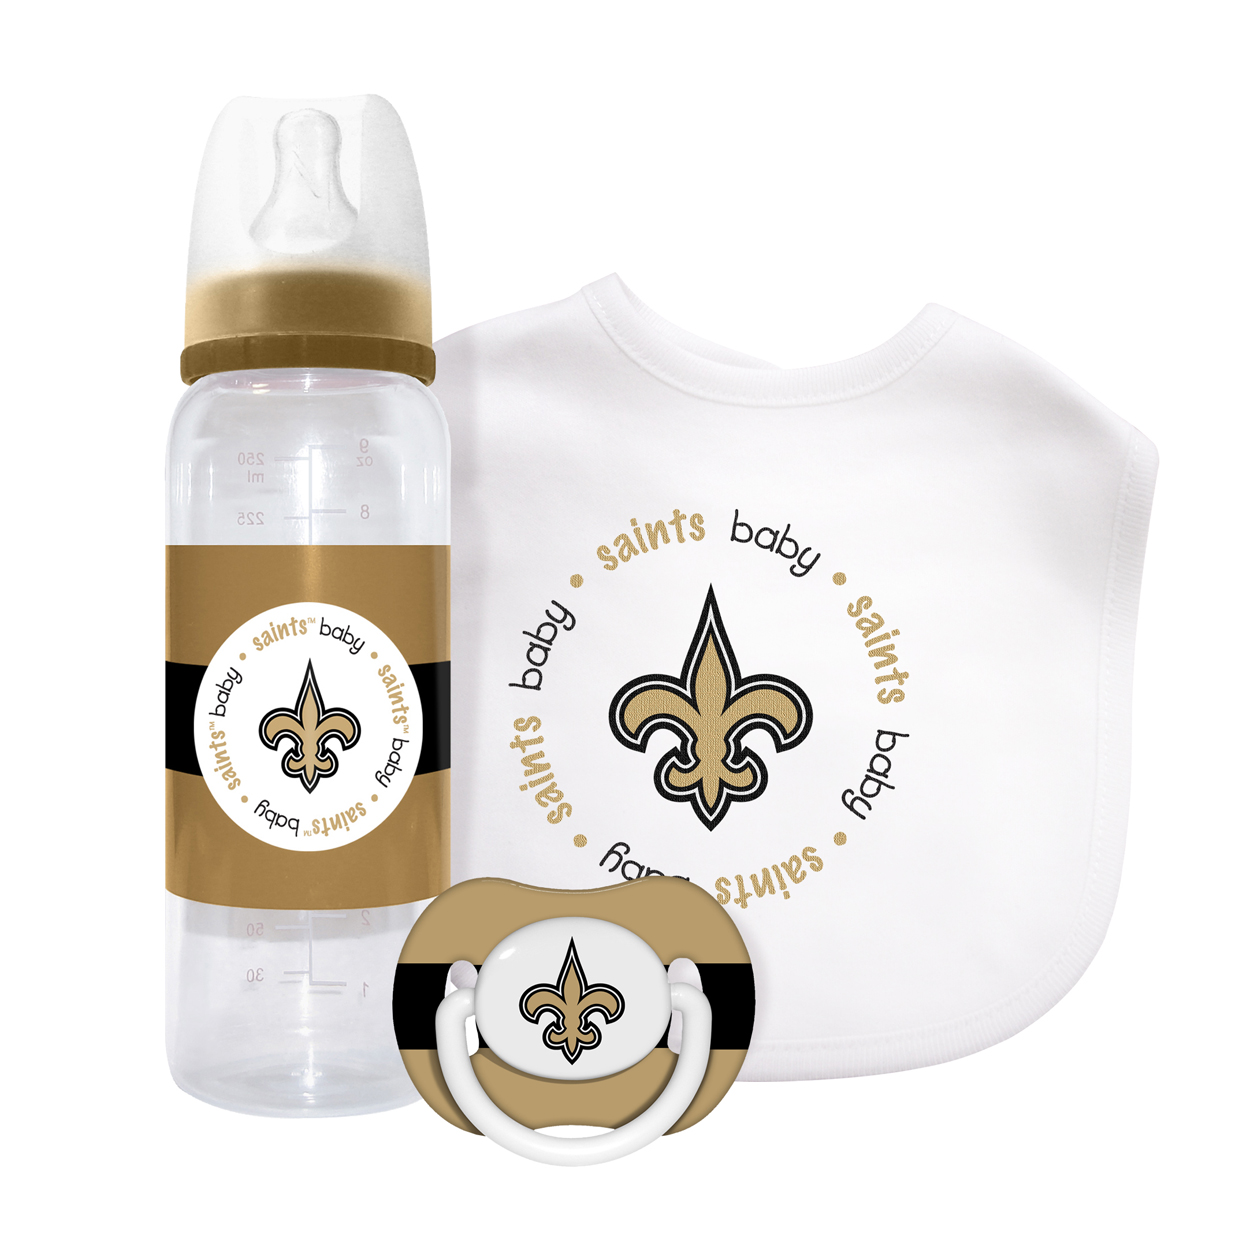 New Orleans Saints Kickoff Collection Gift Set